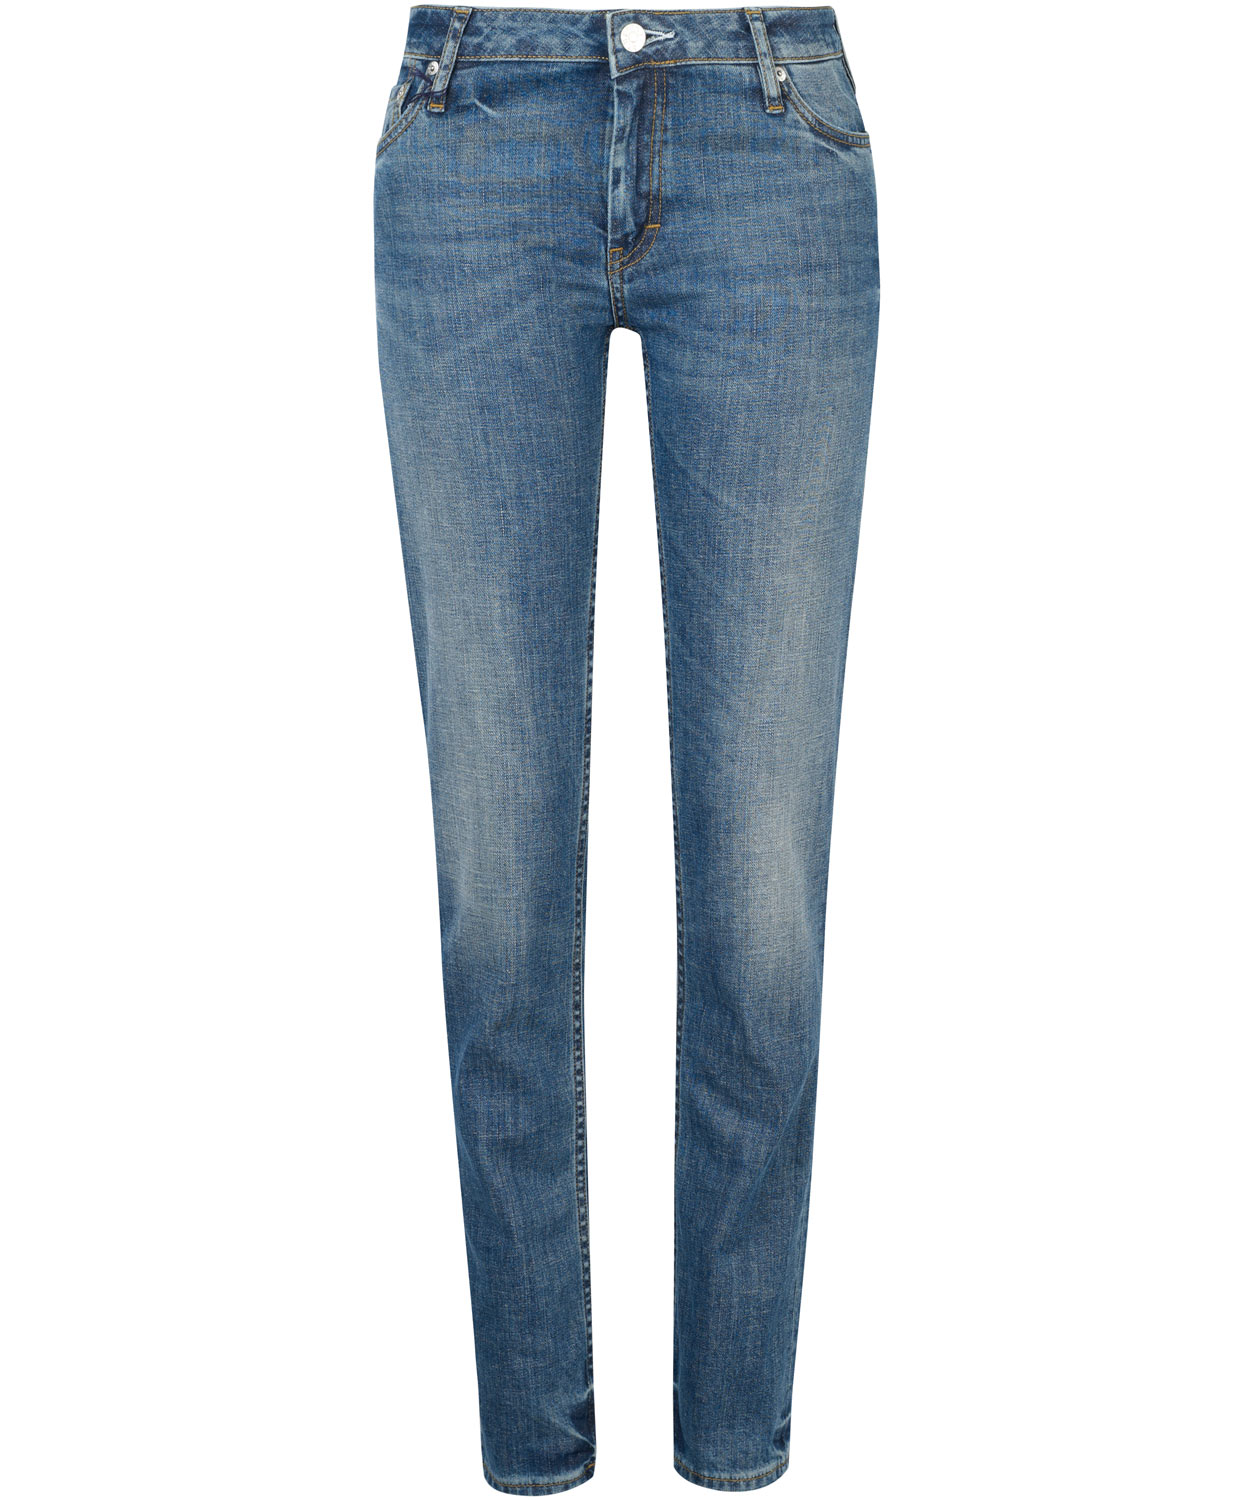 acne studios kex vintage wash skinny jeans in blue lyst. Black Bedroom Furniture Sets. Home Design Ideas